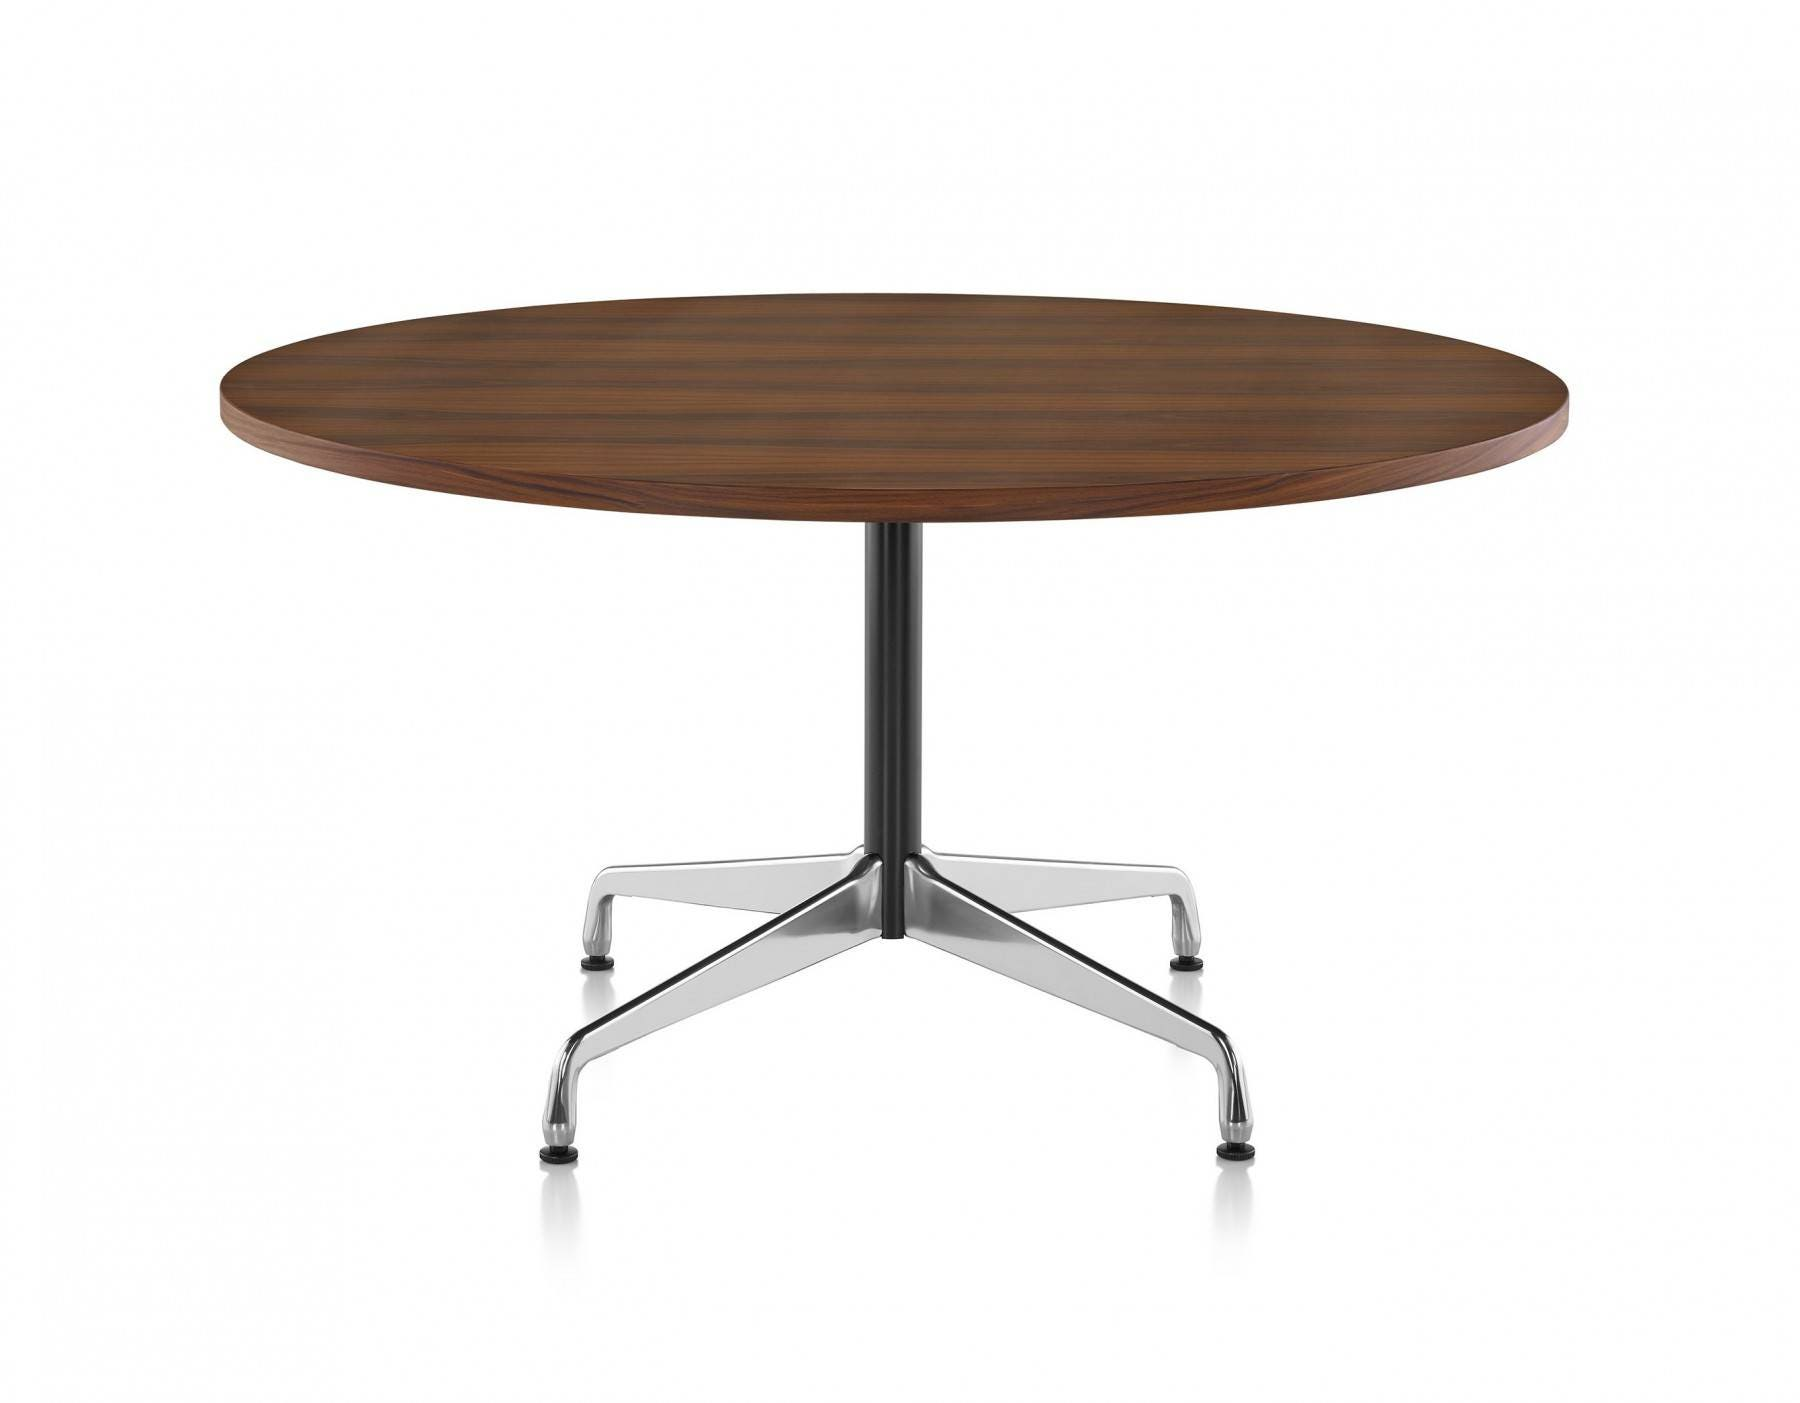 Herman Miller Eames 174 Conference Table Round With